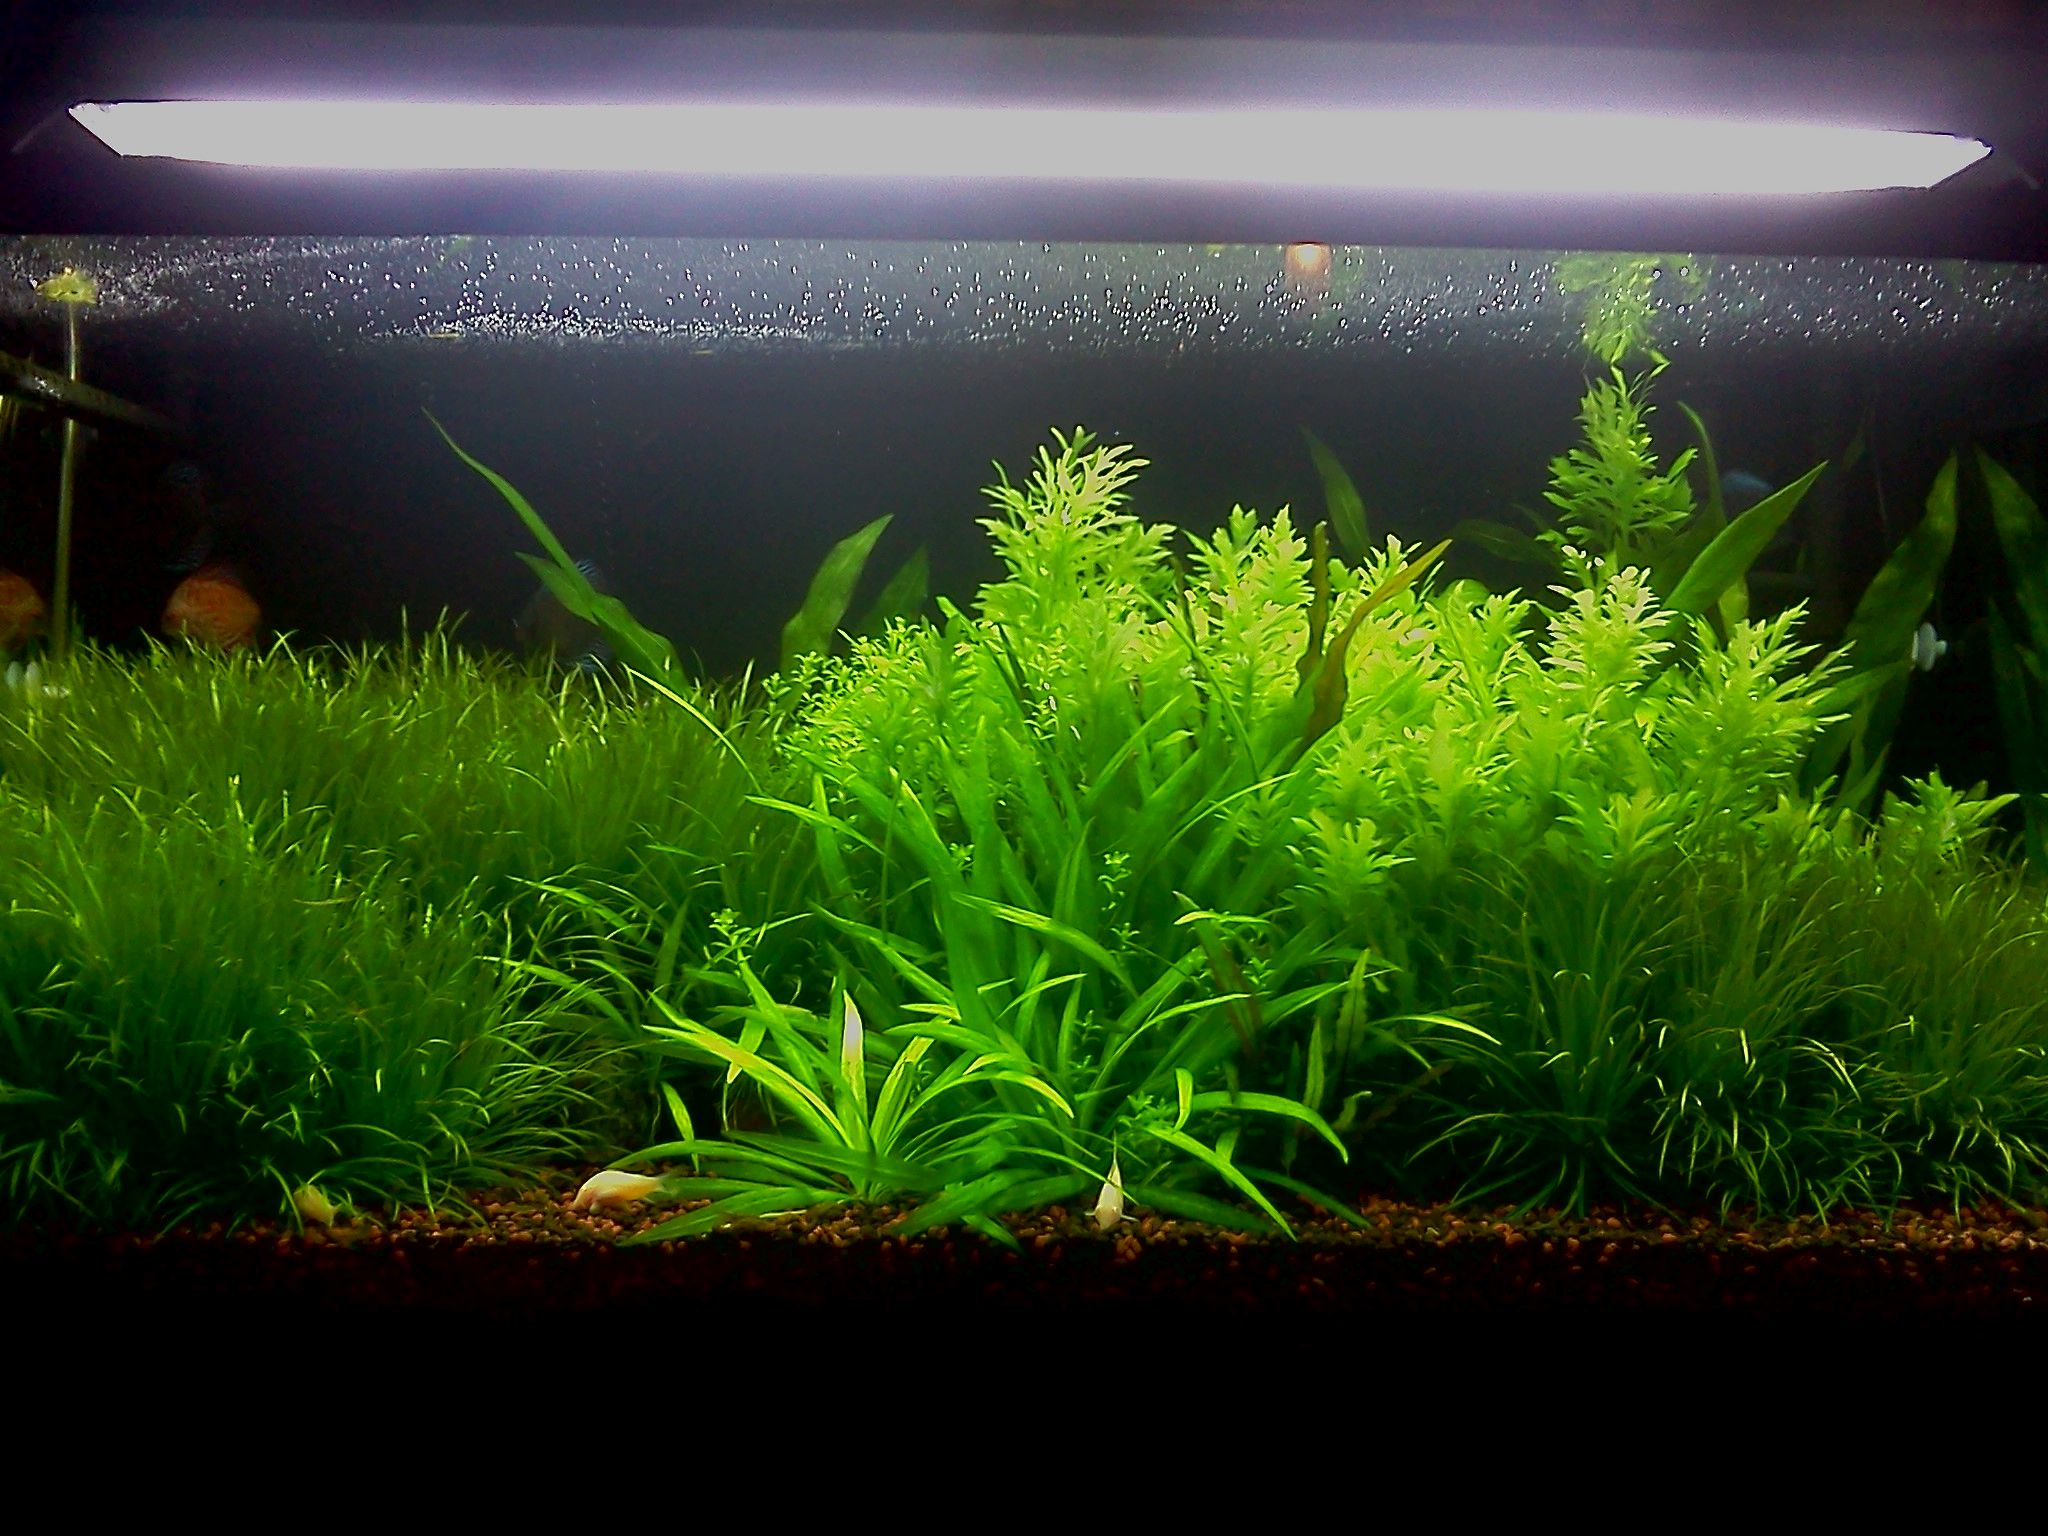 Aquascape Plants For Sale 28 Images Aquascape Plants